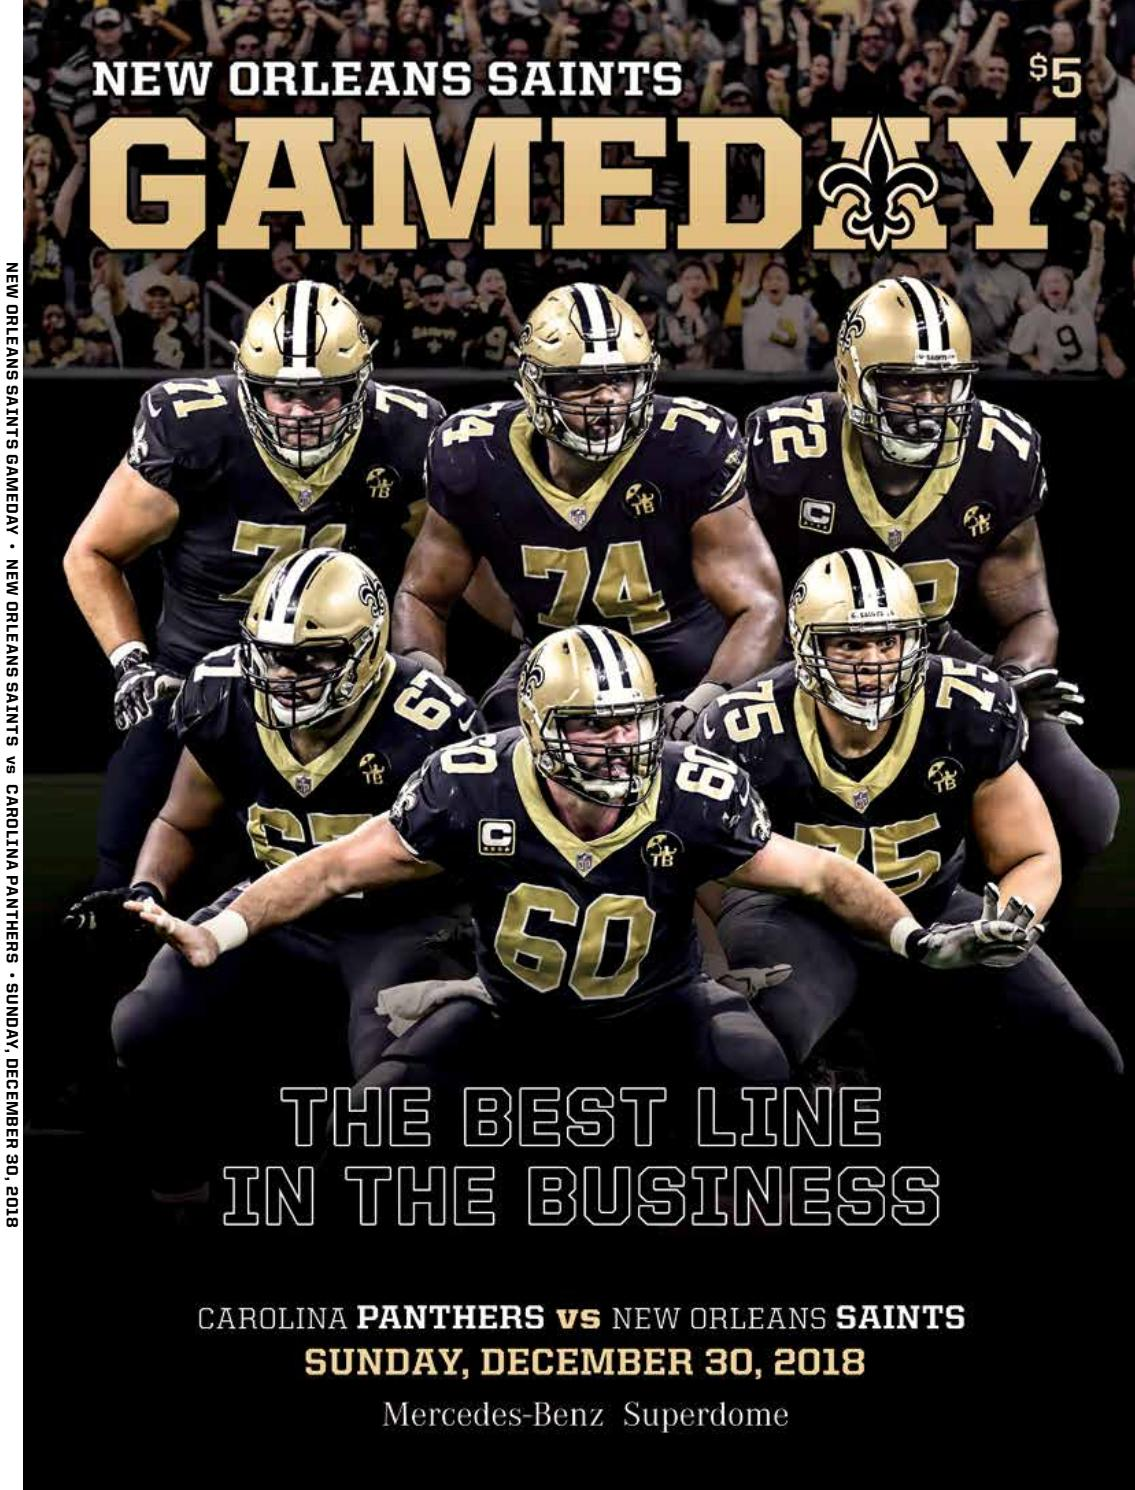 big sale 23e4f a6be4 New Orleans Gameday   New Orleans Saints Vs Carolina Panthers   Sunday,  December 30, 2018 by Renaissance Publishing - issuu